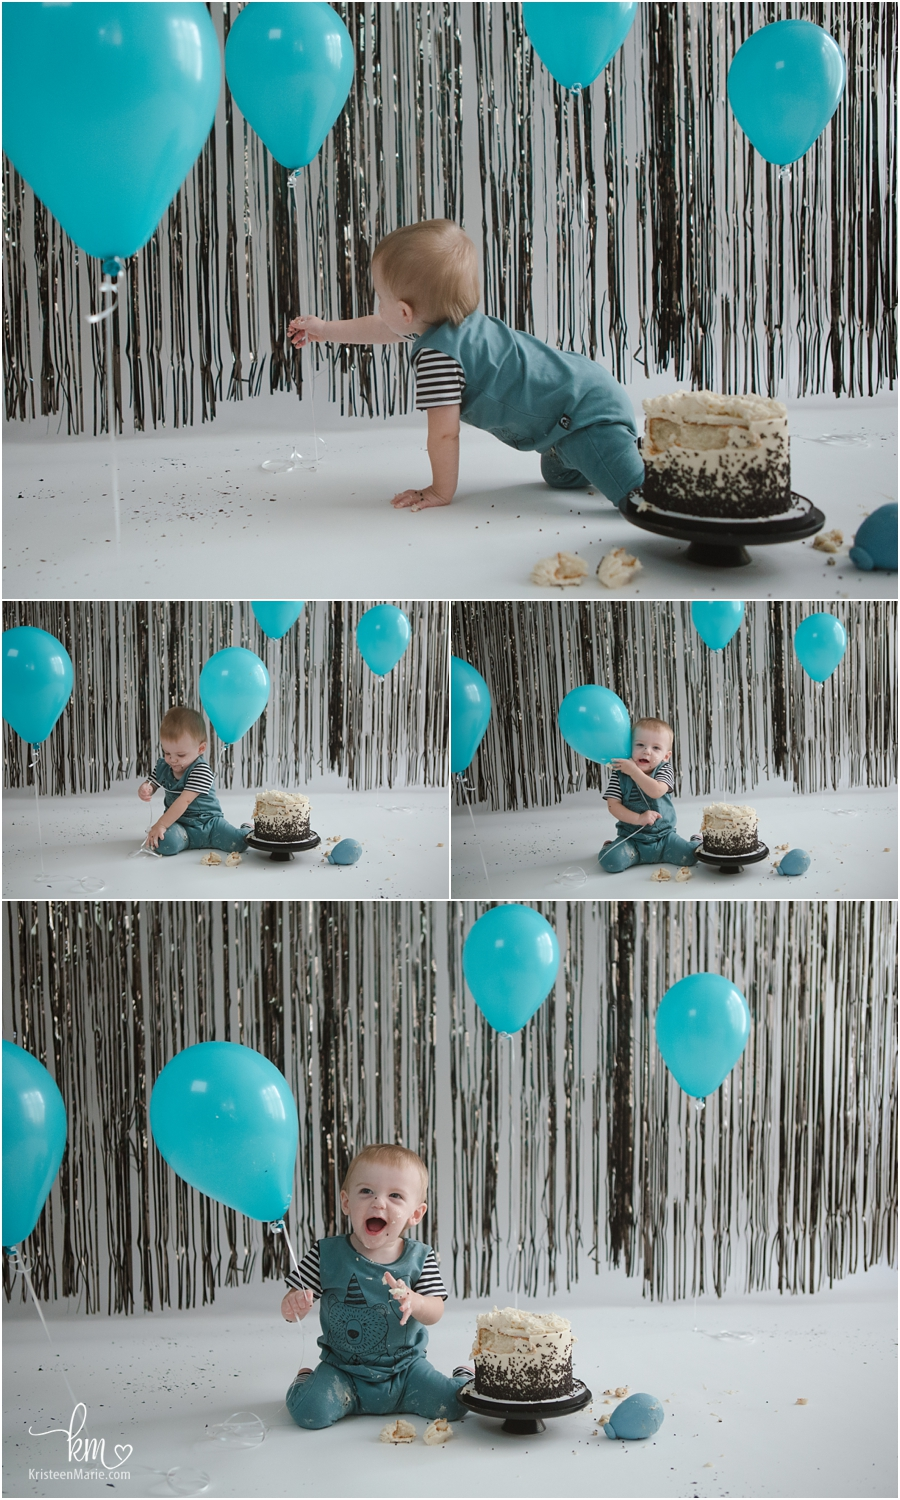 teal baloon with black and white 1st birthday party theme - cake smash session